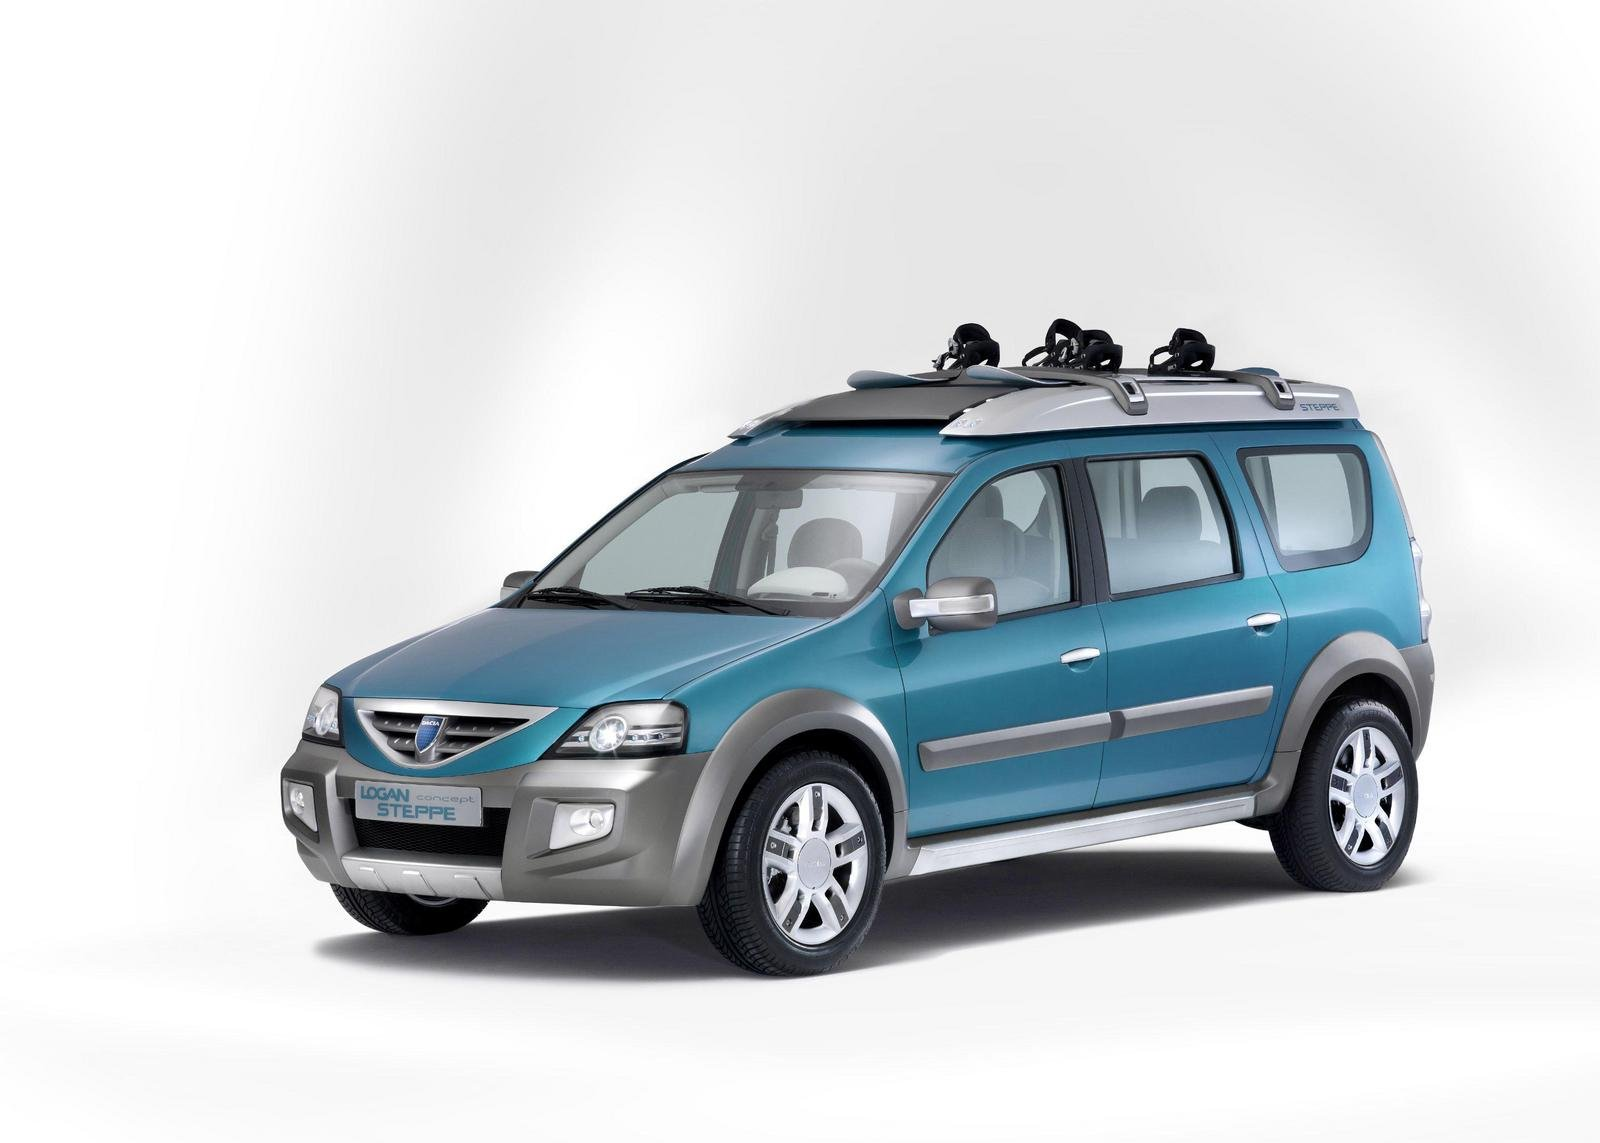 2007 dacia logan steppe review top speed. Black Bedroom Furniture Sets. Home Design Ideas